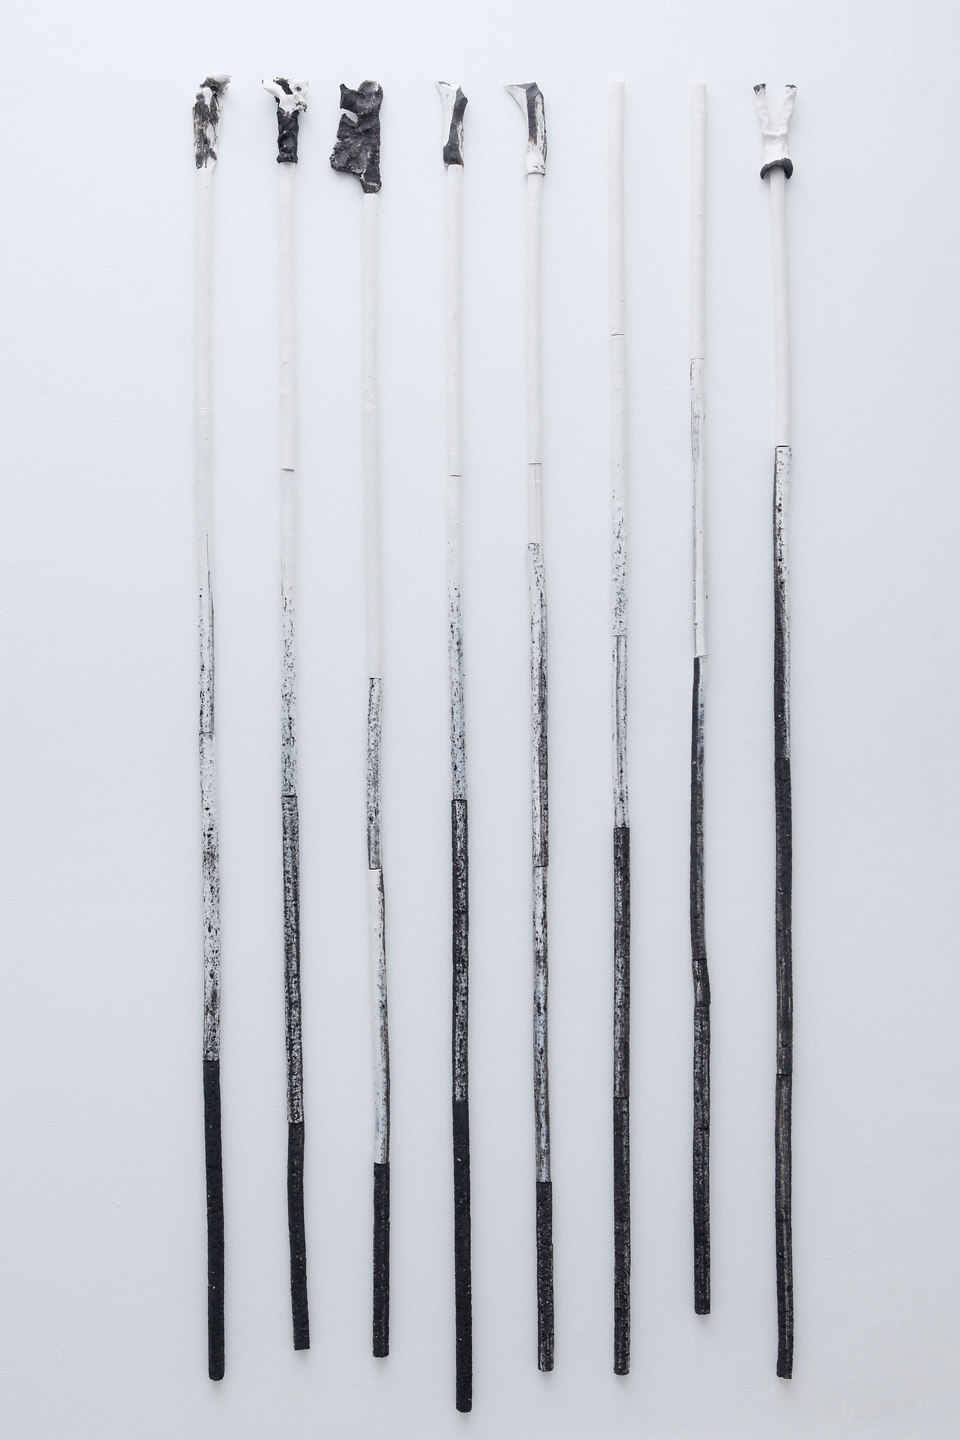 Peles Empire, Formation, 'formation 10', 2013, unglazed porcelain with black grog, h. 220 x w. 100 cm, Cell Project Space